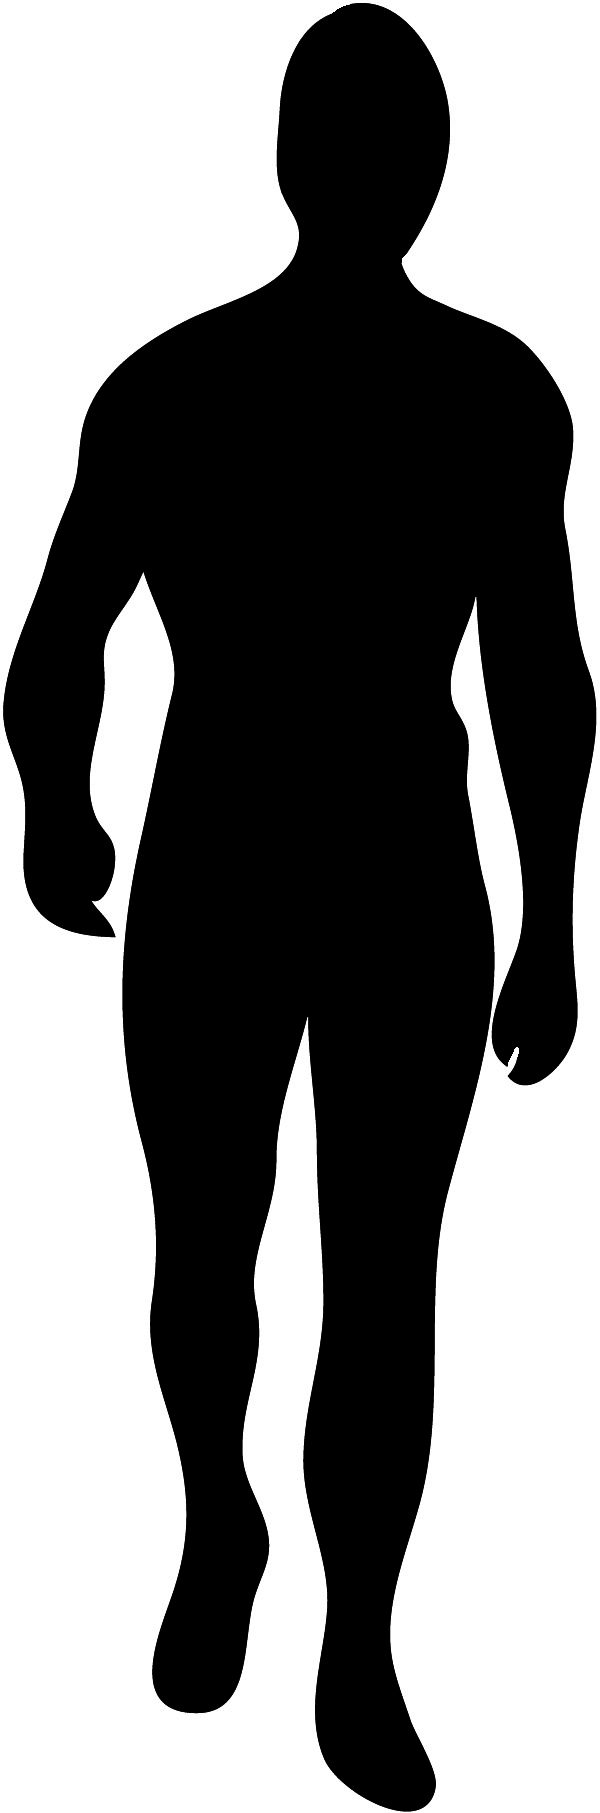 Man silhouette seen from front